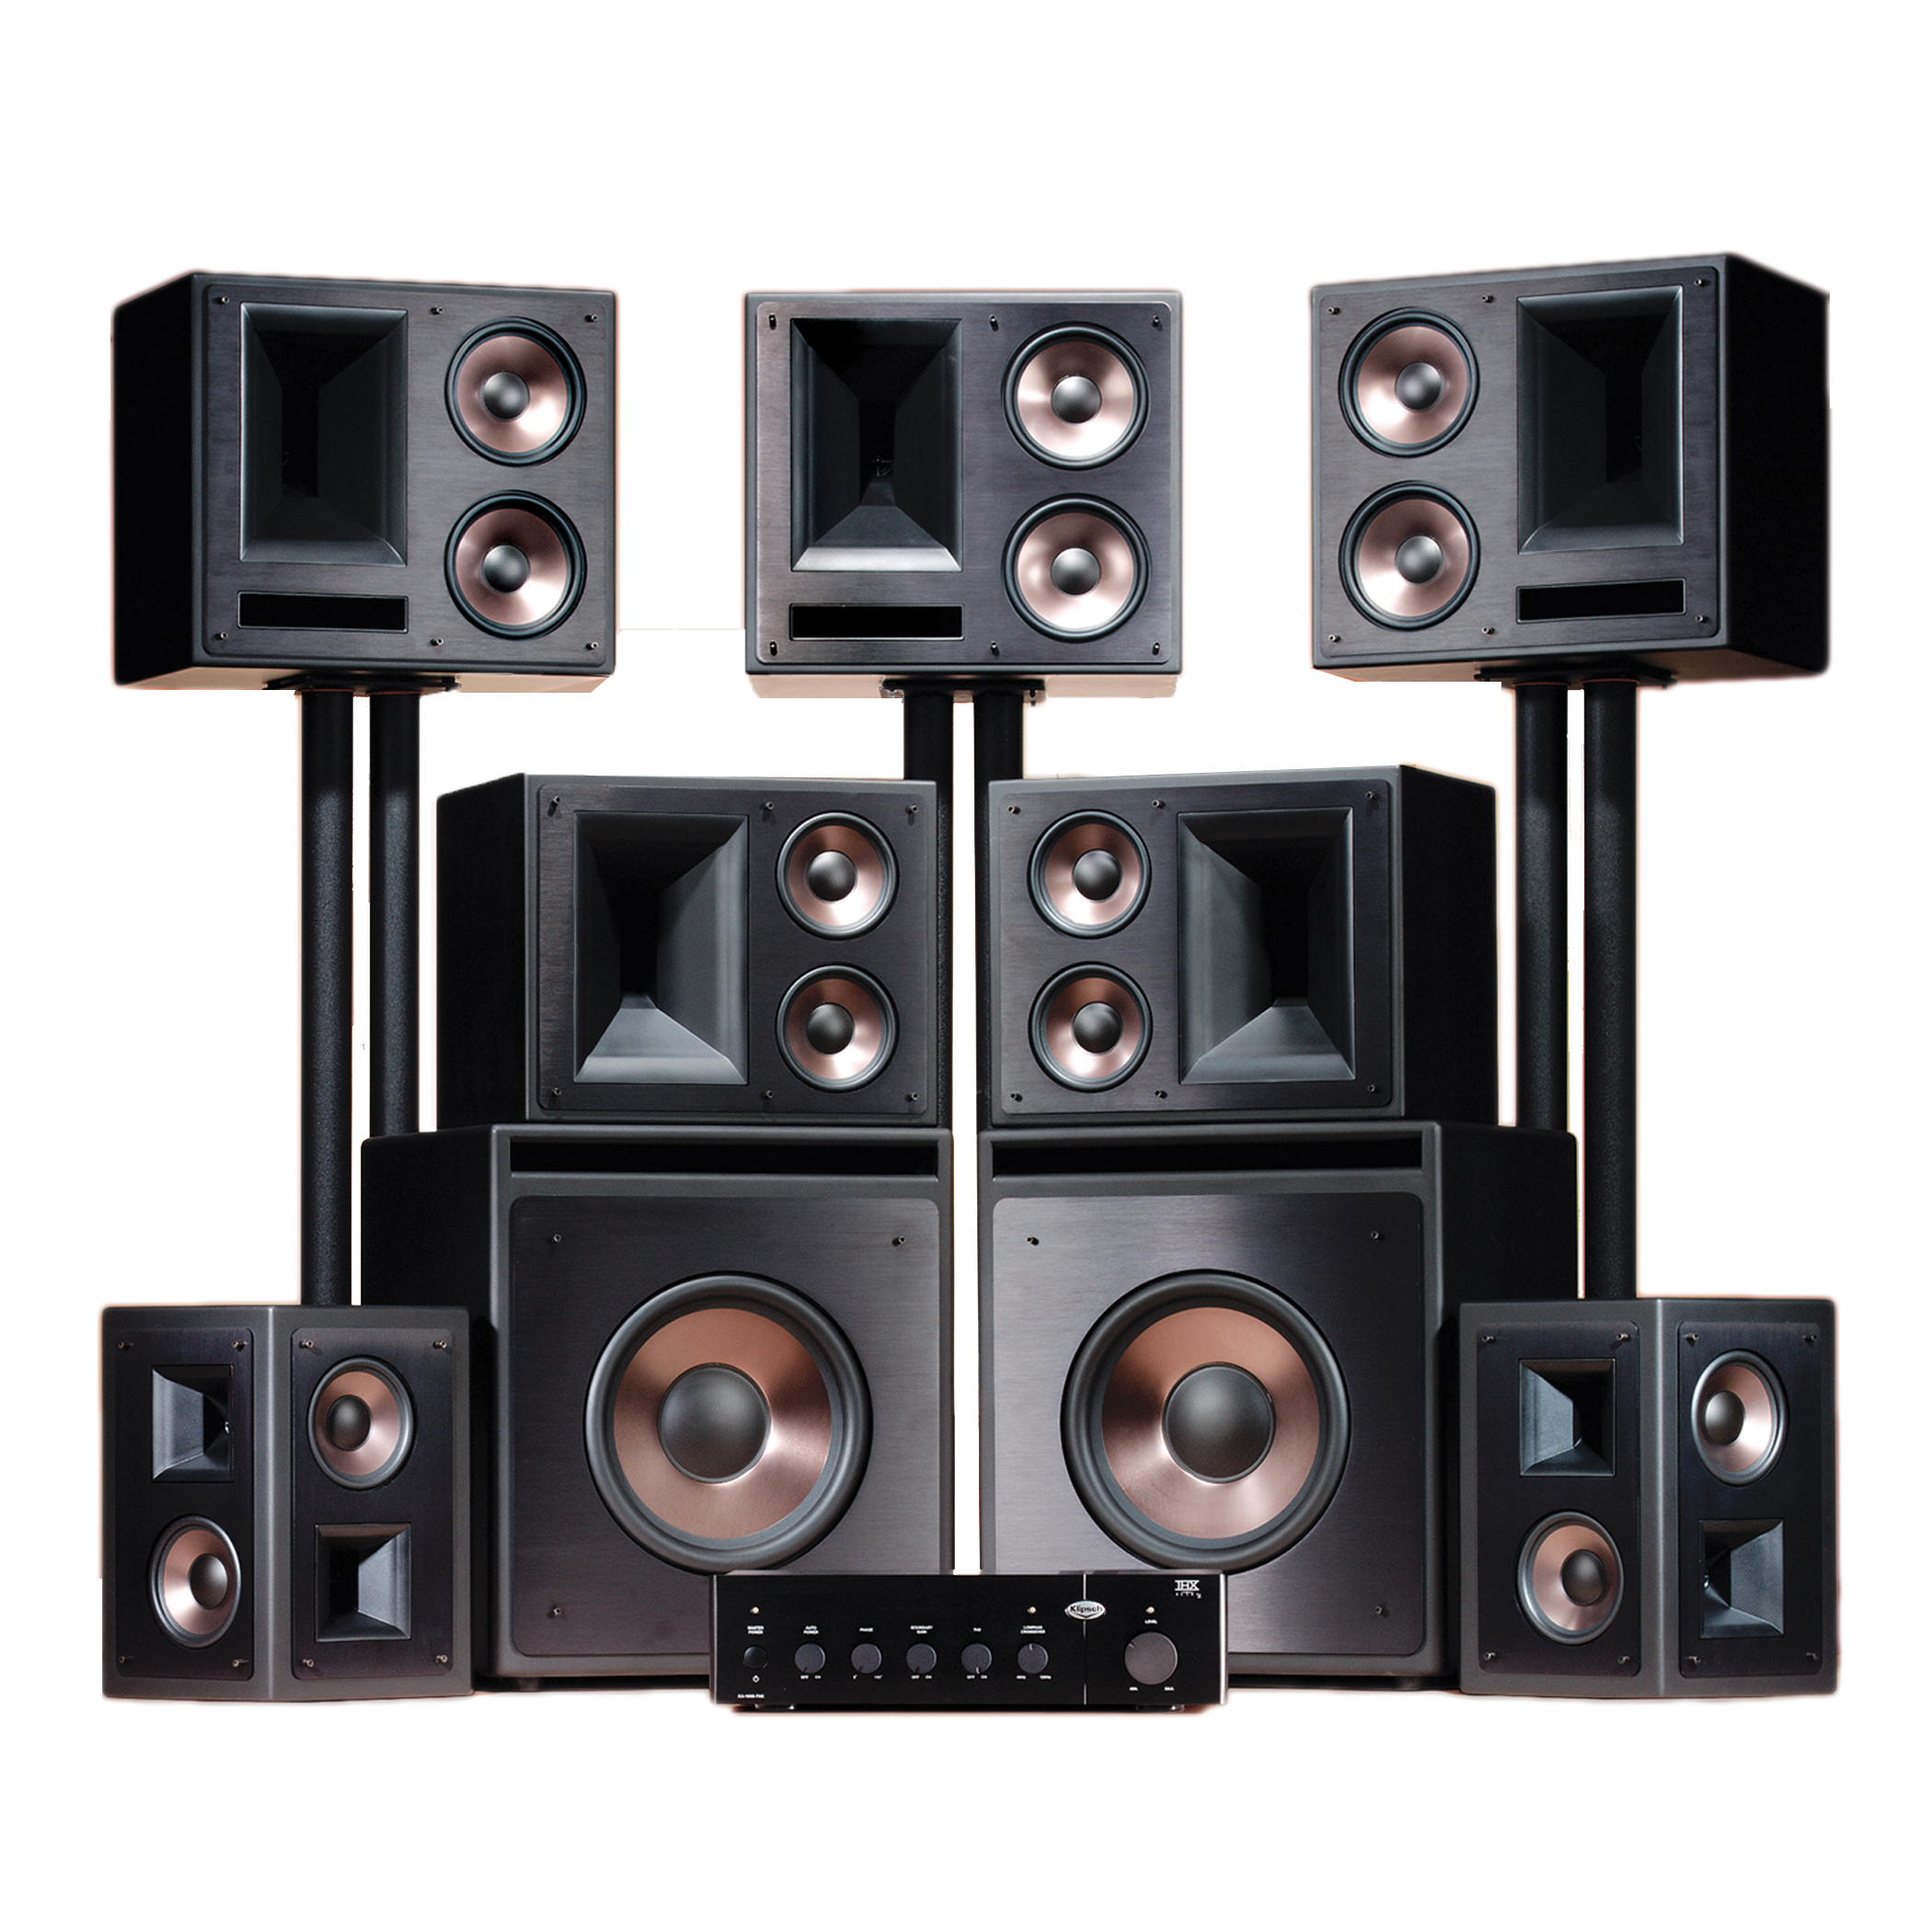 THX Ultra2 Home Theatre System | Klipsch